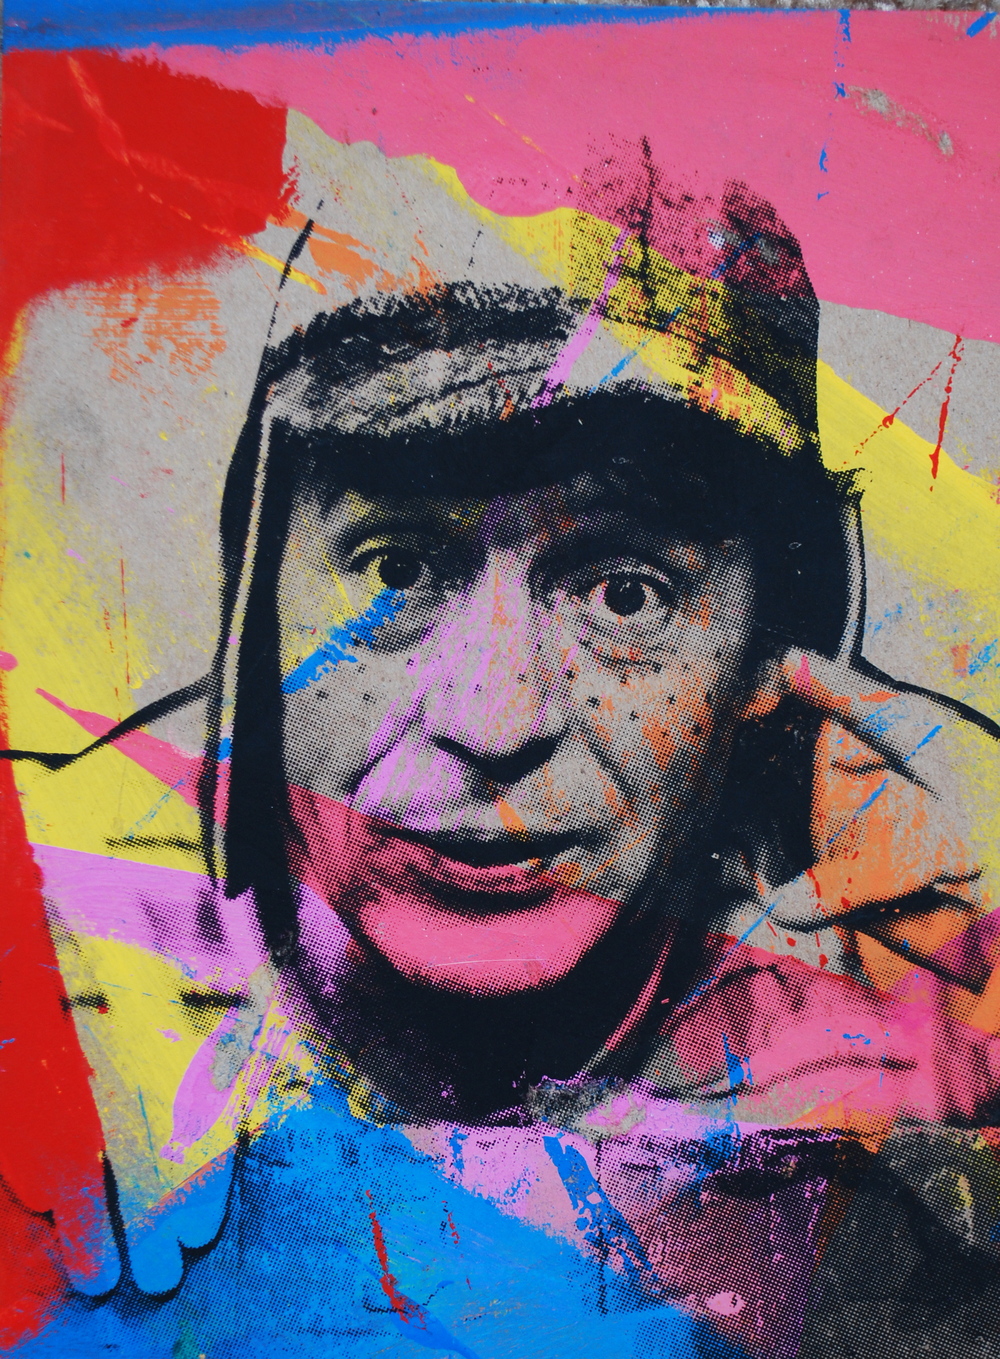 Chavo 1. 9 x 12 in